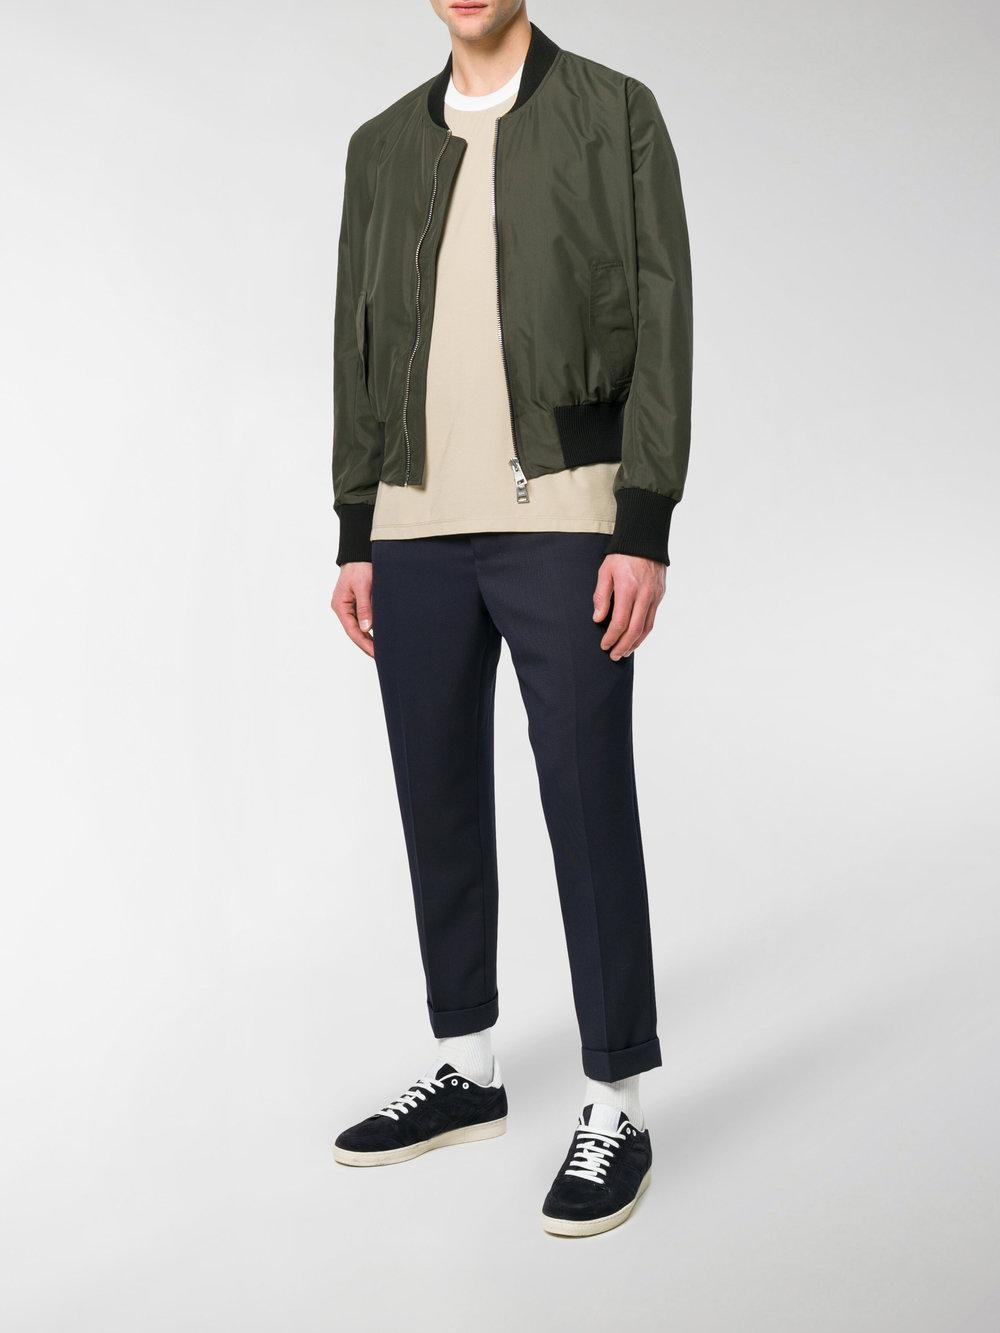 AMI Synthetic Bomber Jacket in Green for Men